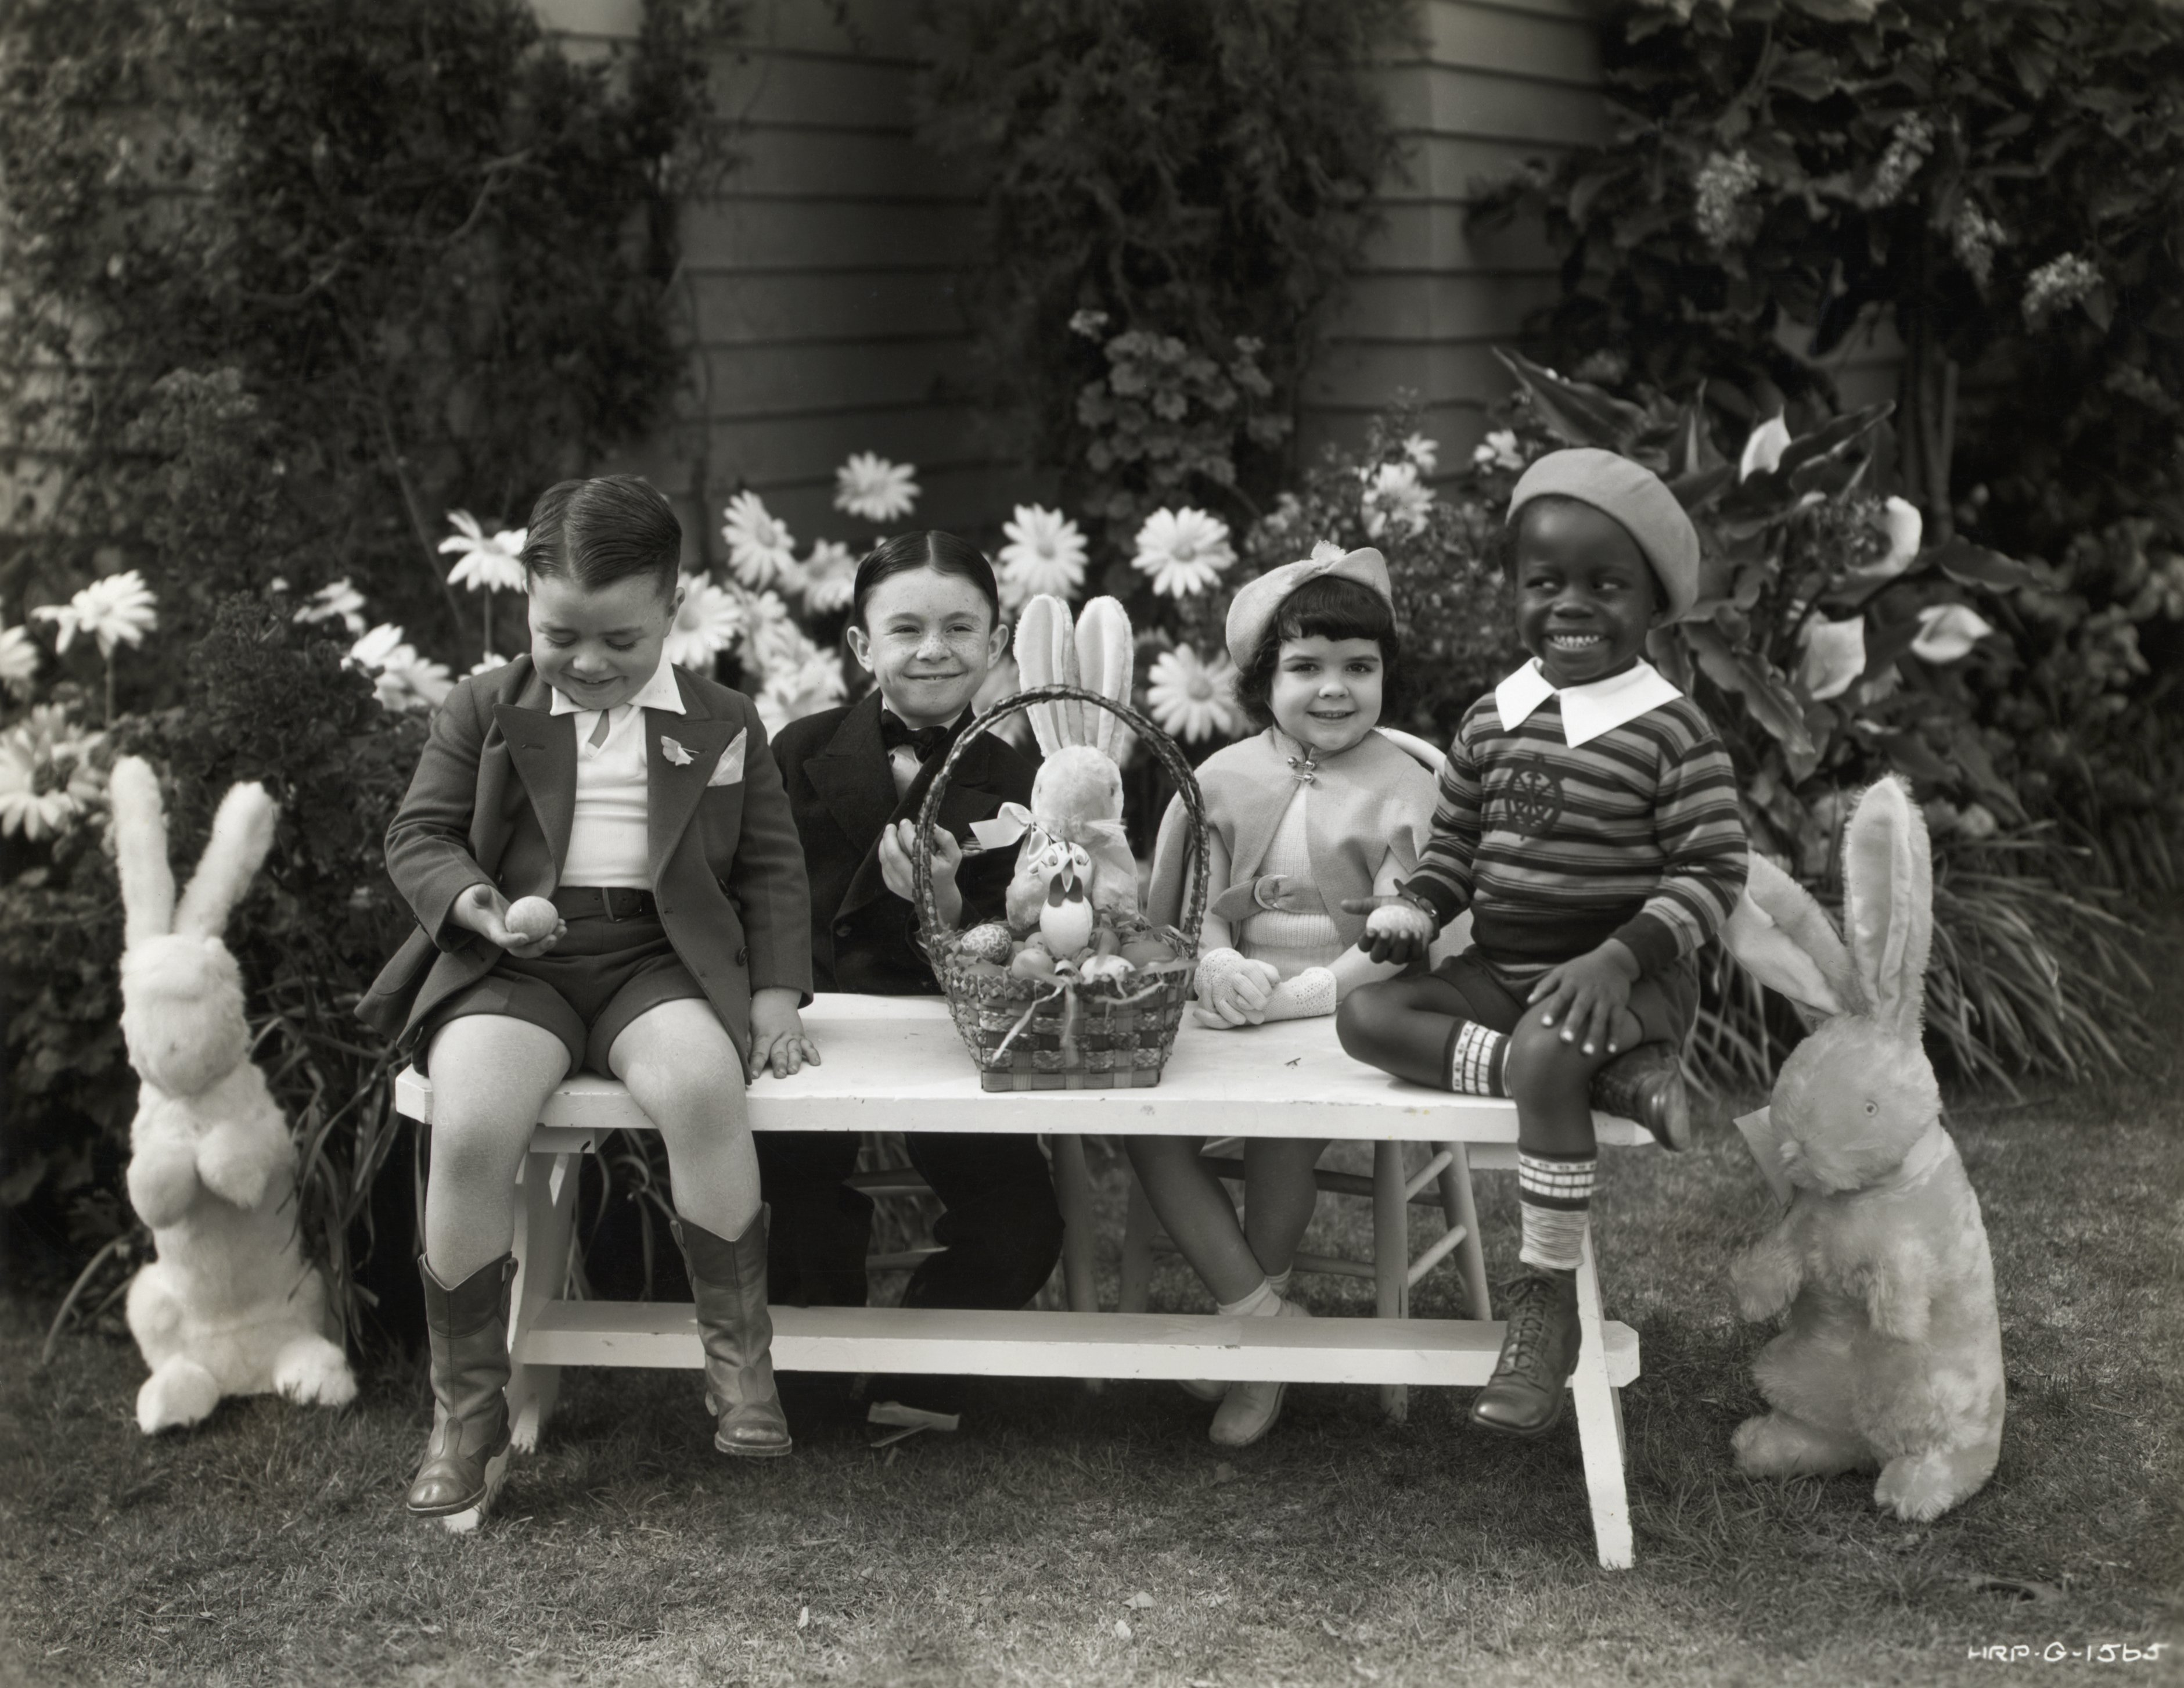 """""""Our Gang"""" kids celebrating Easter outdoors 